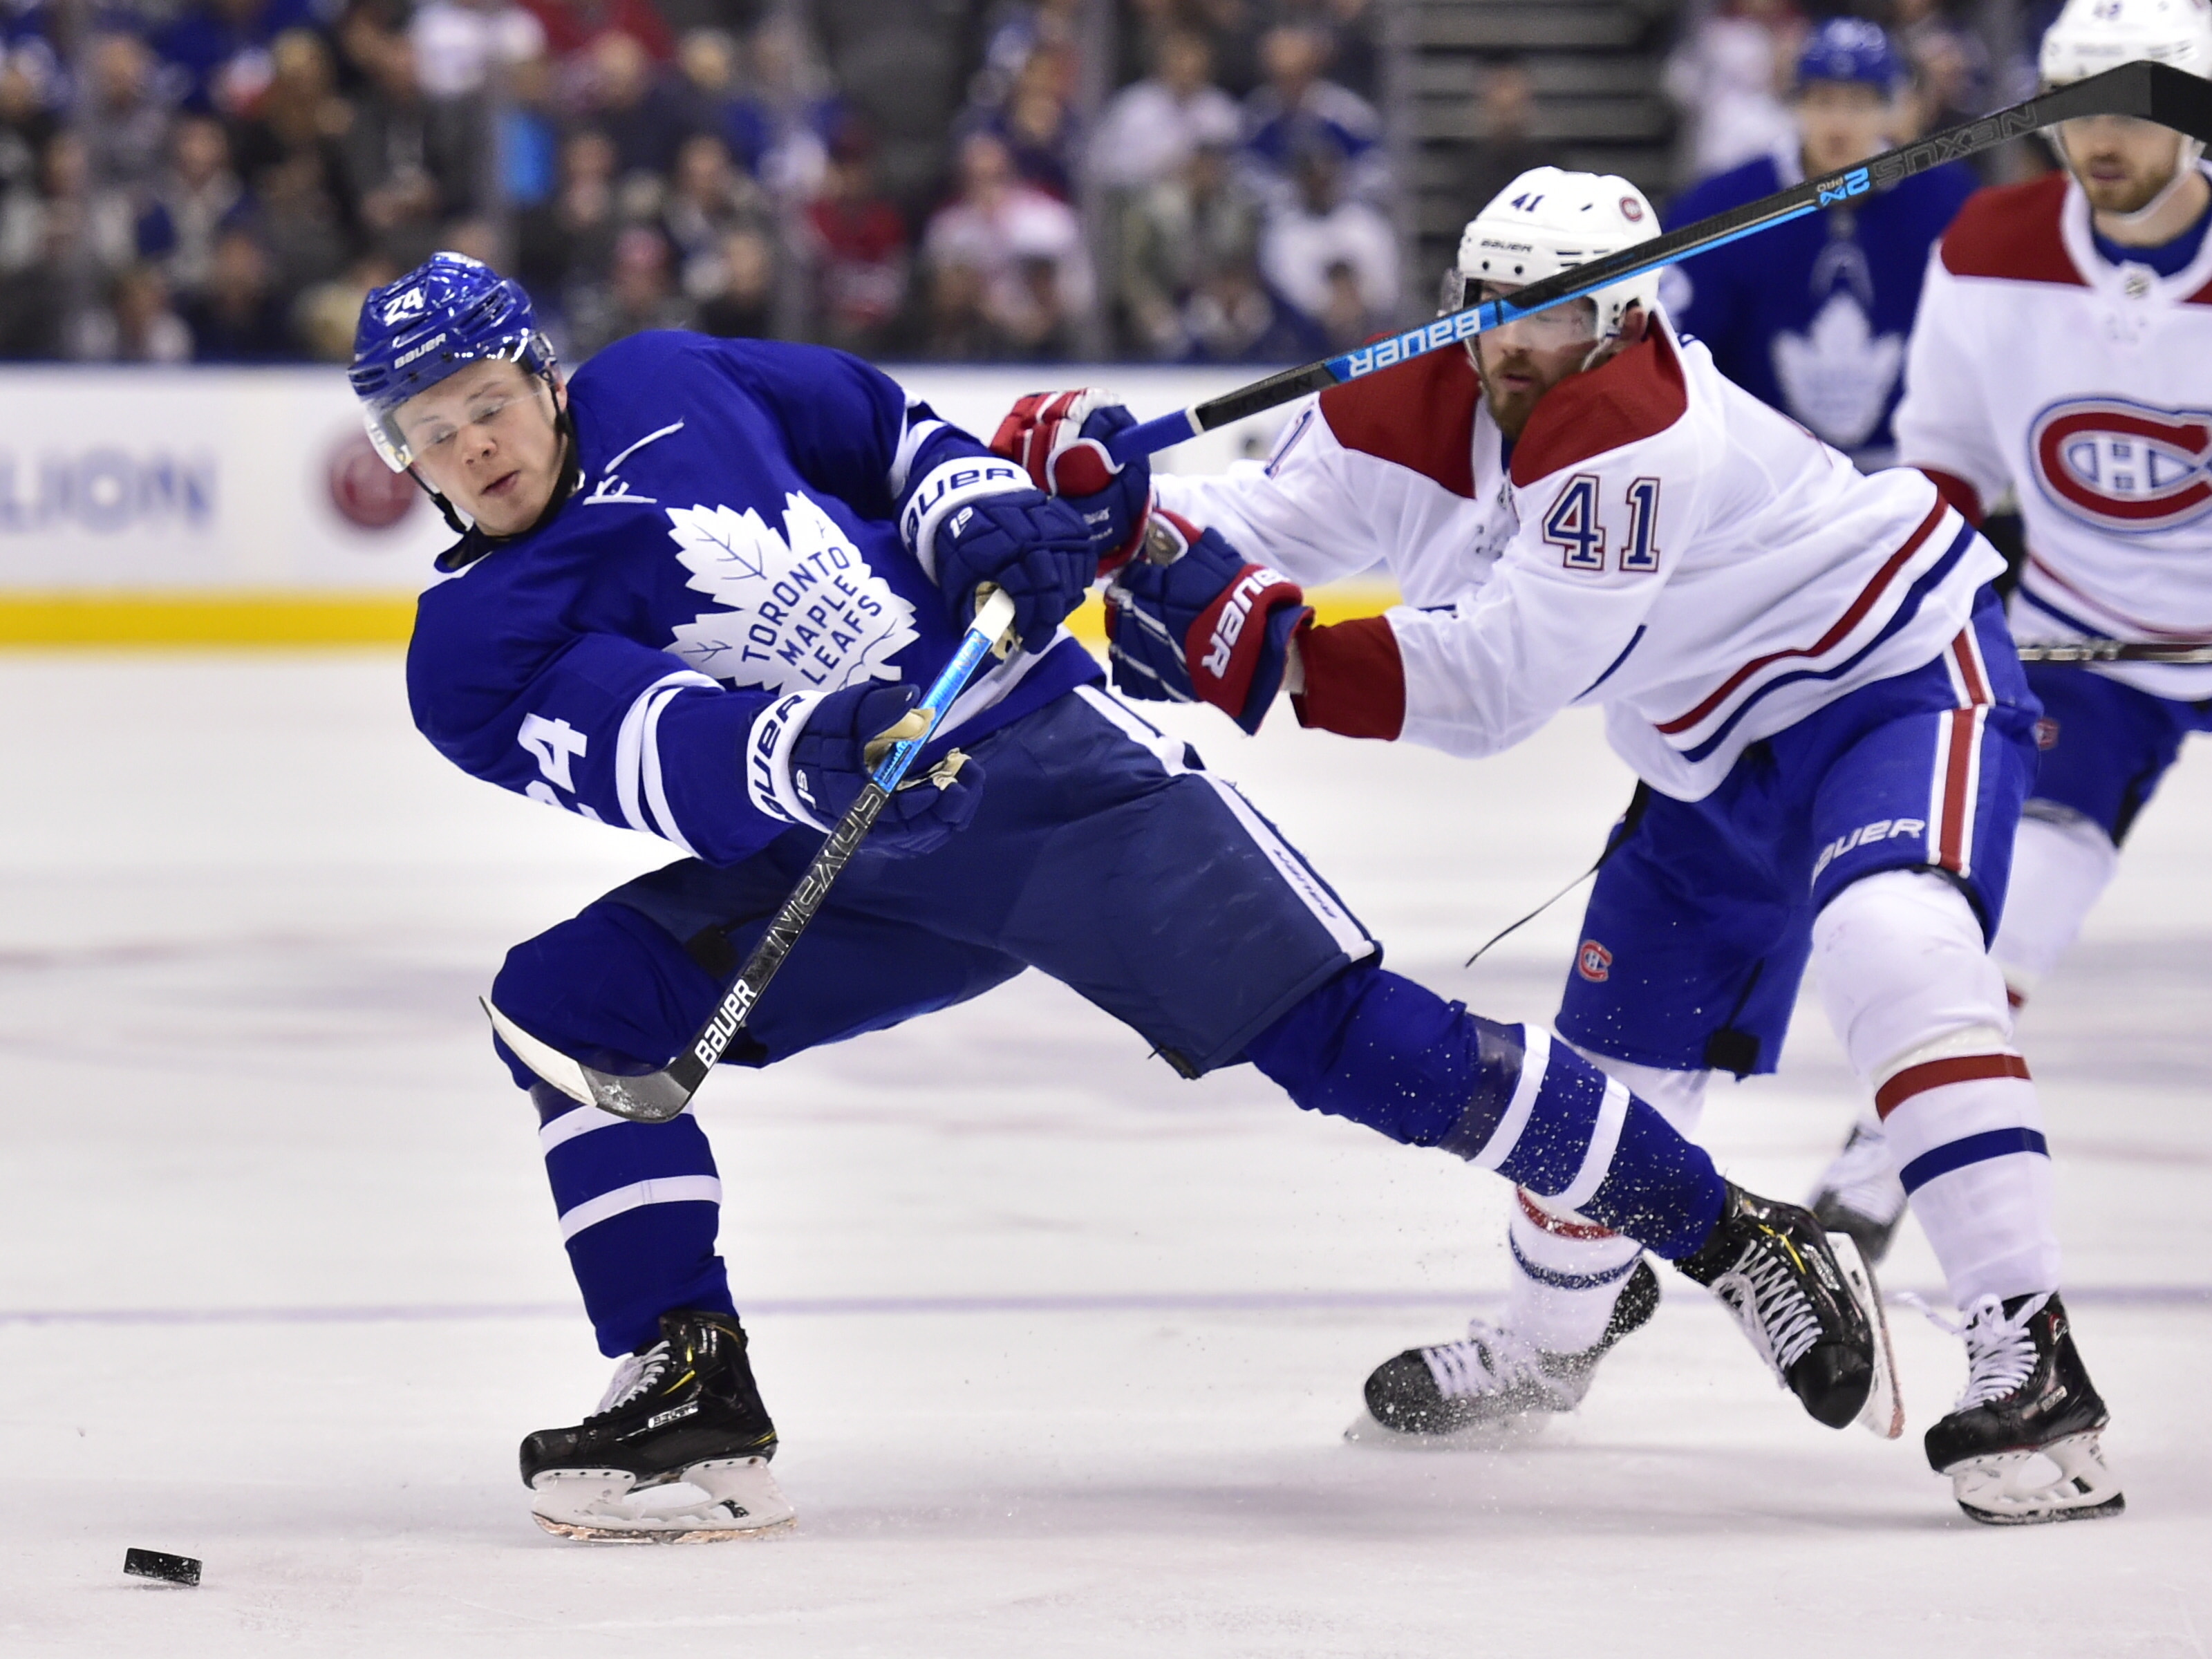 Hyman scores twice, Maple Leafs rally to beat Canadiens 6-3